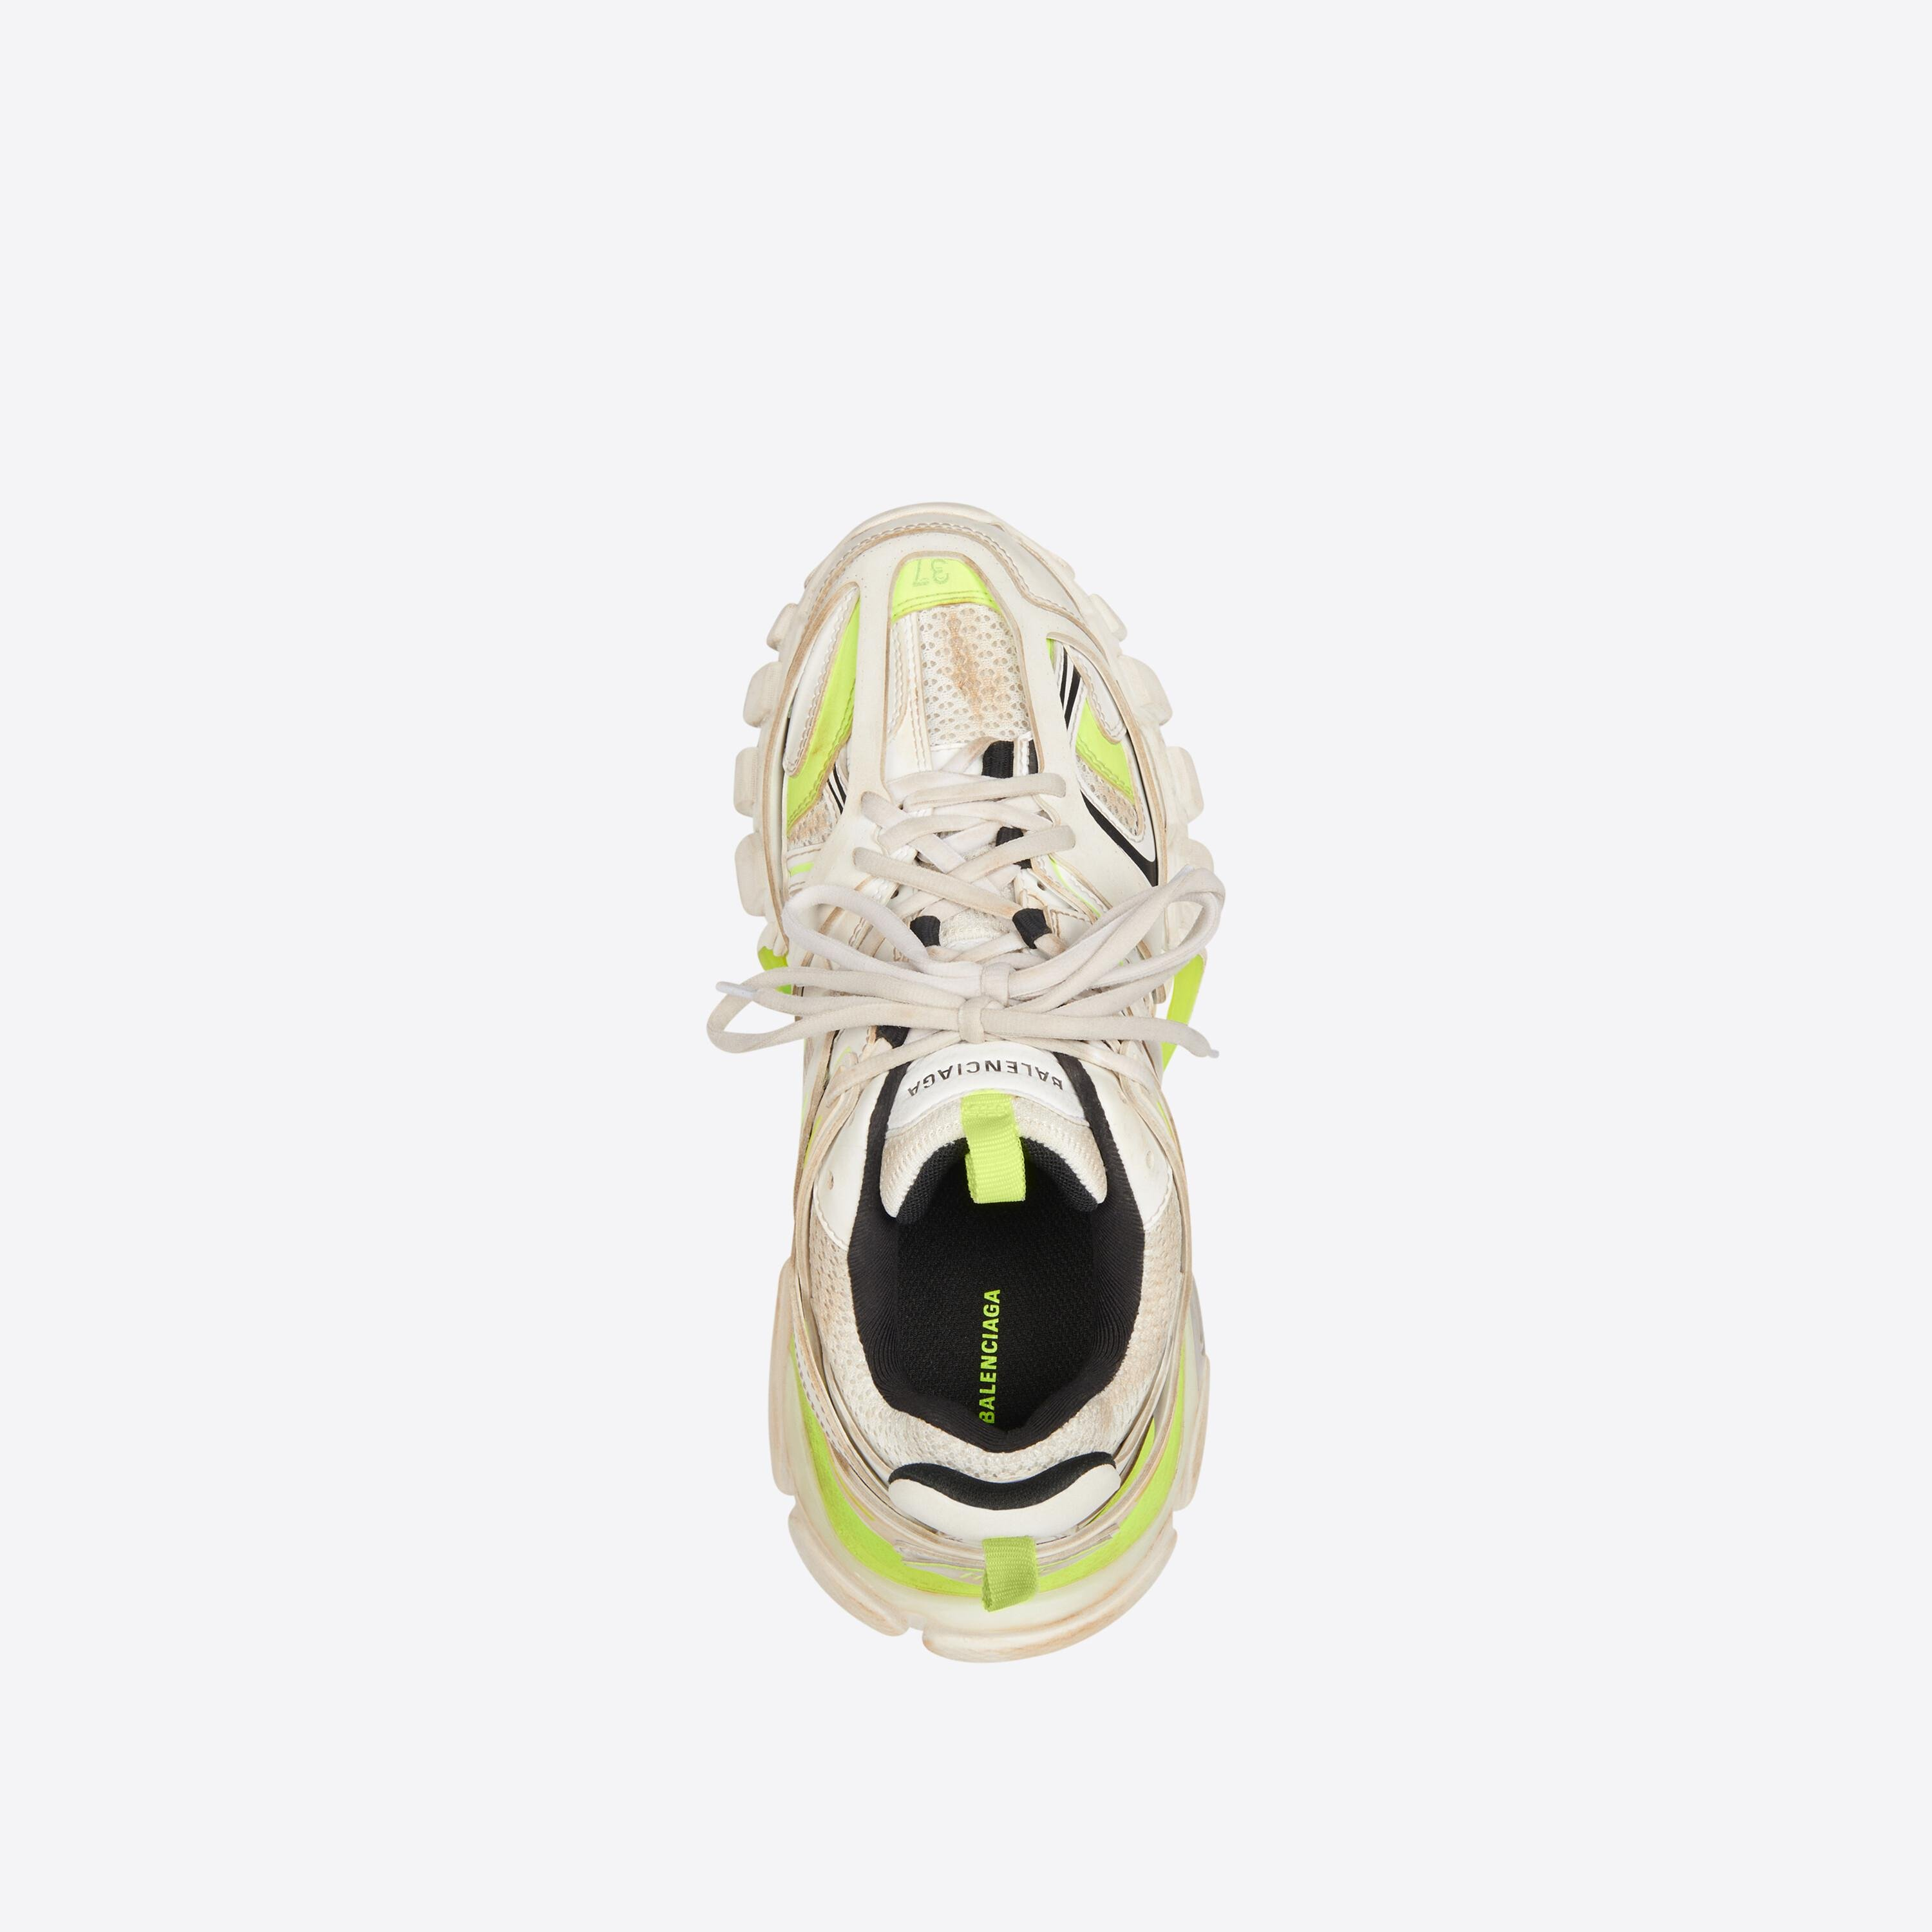 Track Sneaker Worn Out 4